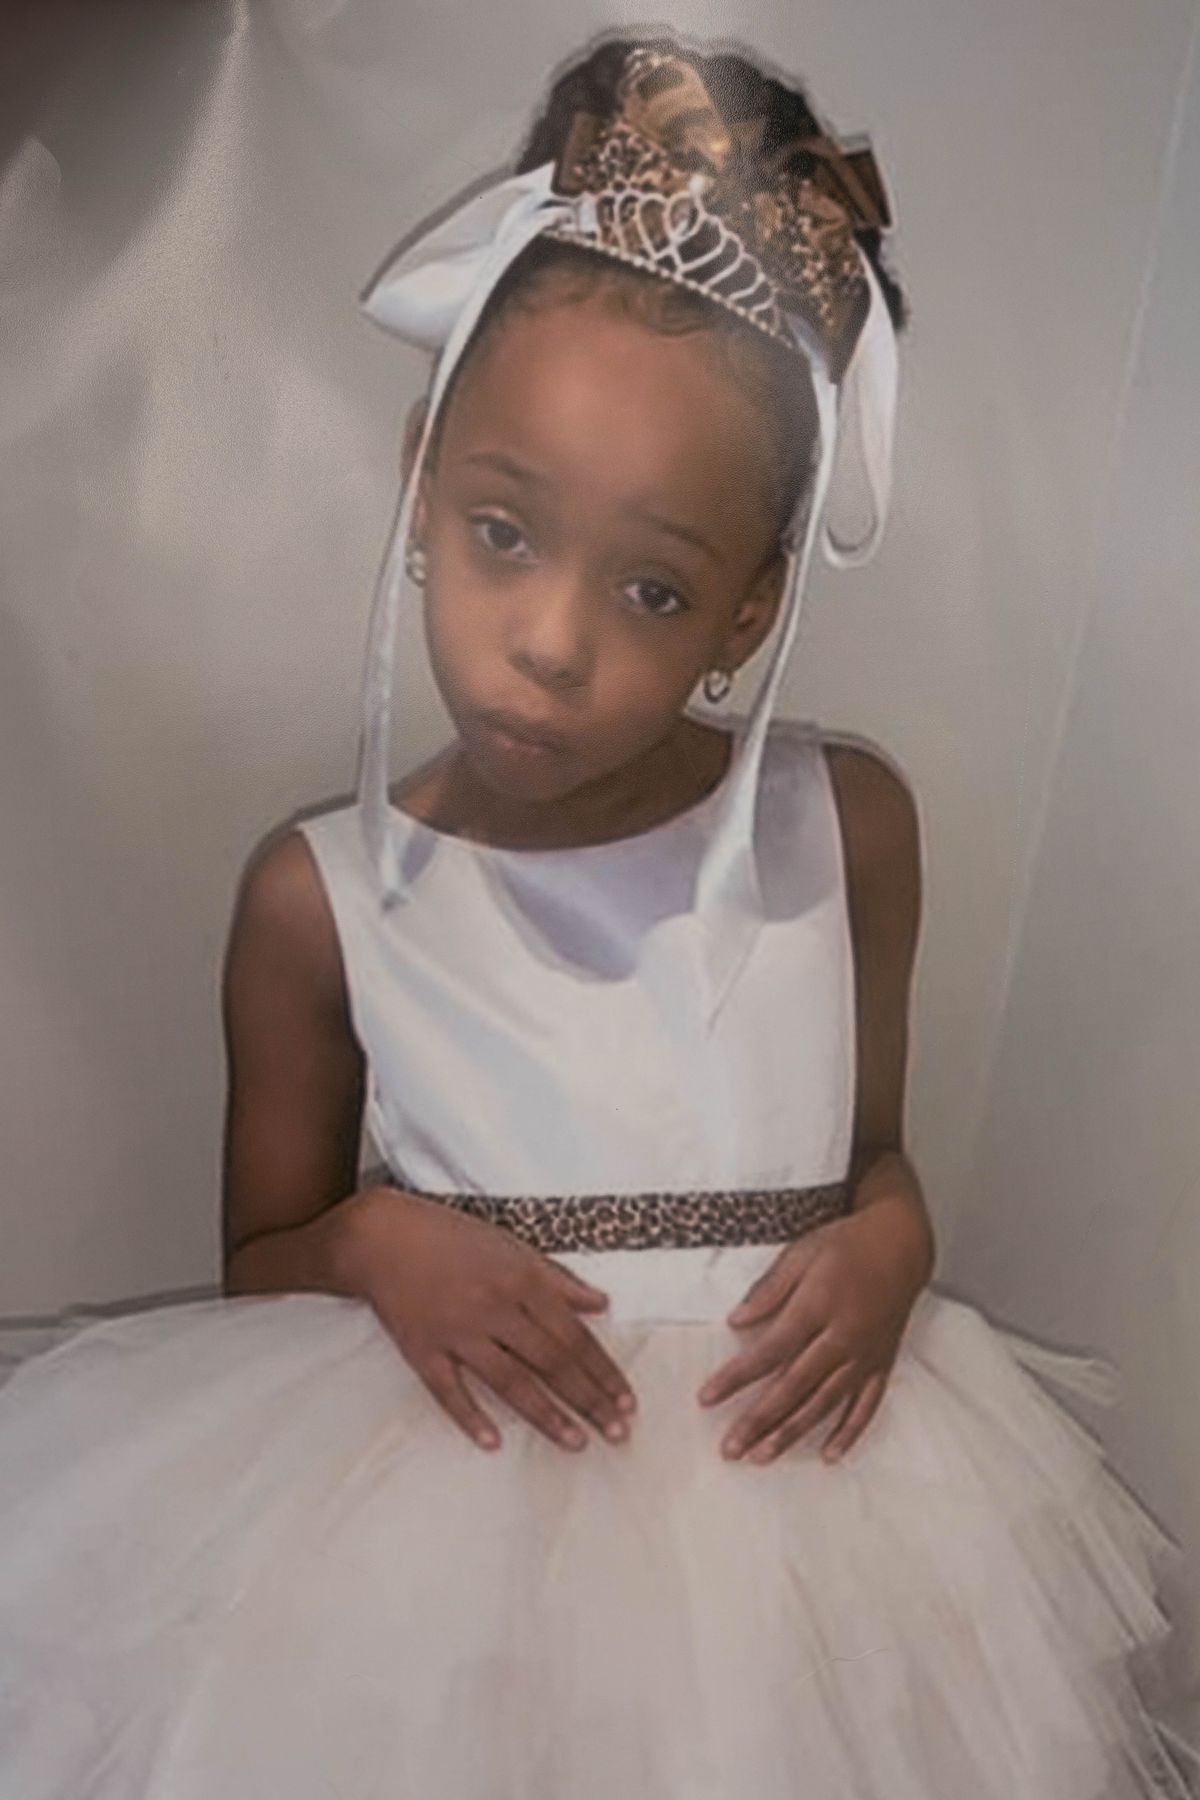 Dewey Elementary School second-grader Dajore Wilson, 8, was killed Sept. 7 while riding in her father's car in Canaryville. When her father stopped at a light at South Union Avenue and West 47th Street, someone in a car trailing them sprayed their car with bullets.